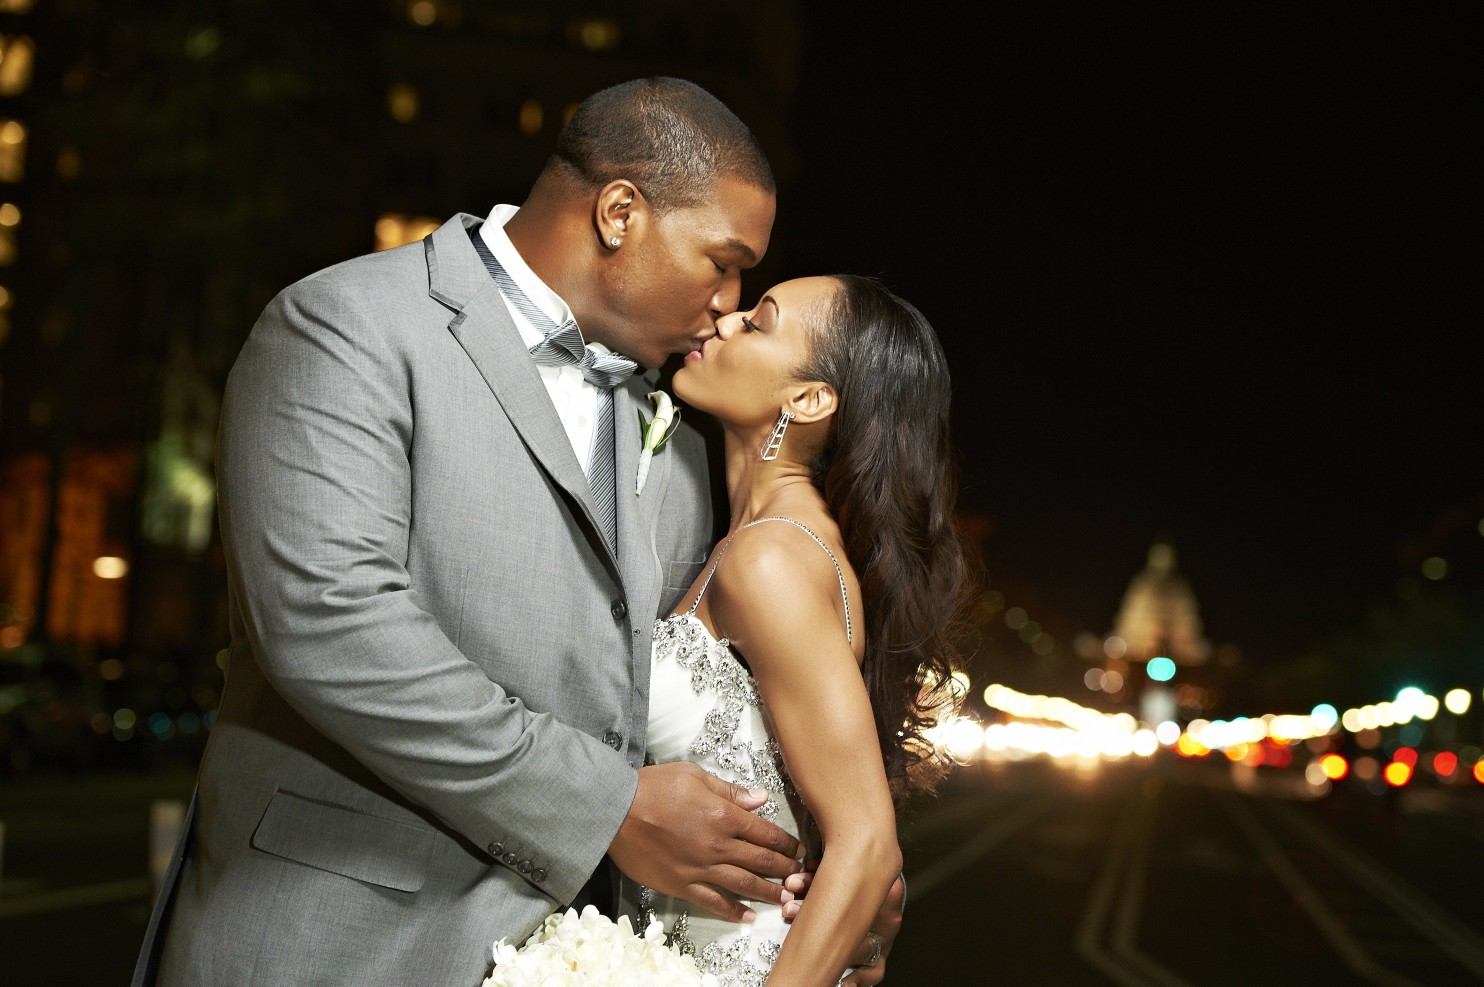 Chris Samuels holds Monique as he wraps his hands around her hips. They are kissing in the picture .